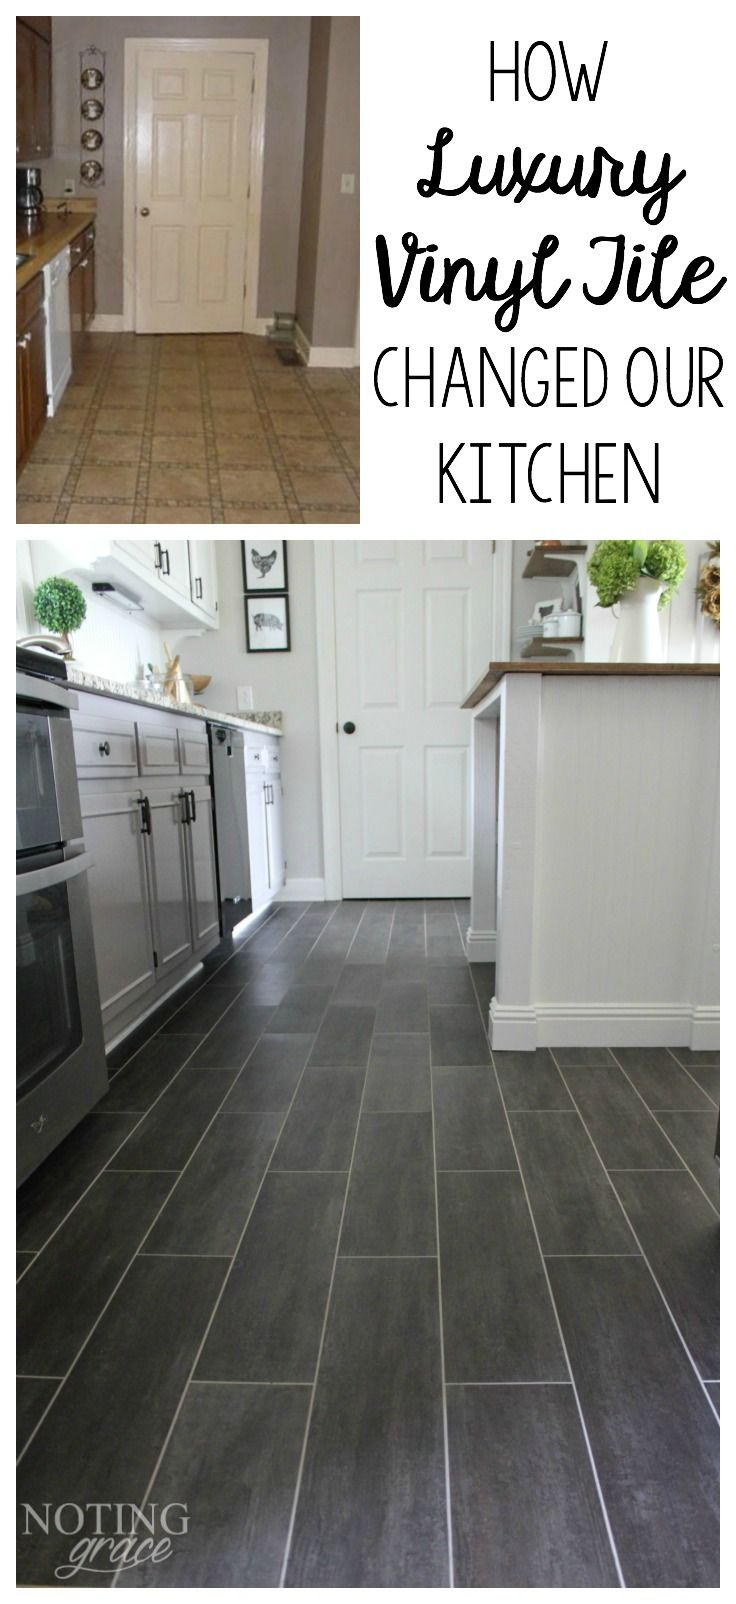 17 Best Ideas About Kitchen Floors On Pinterest Bathroom